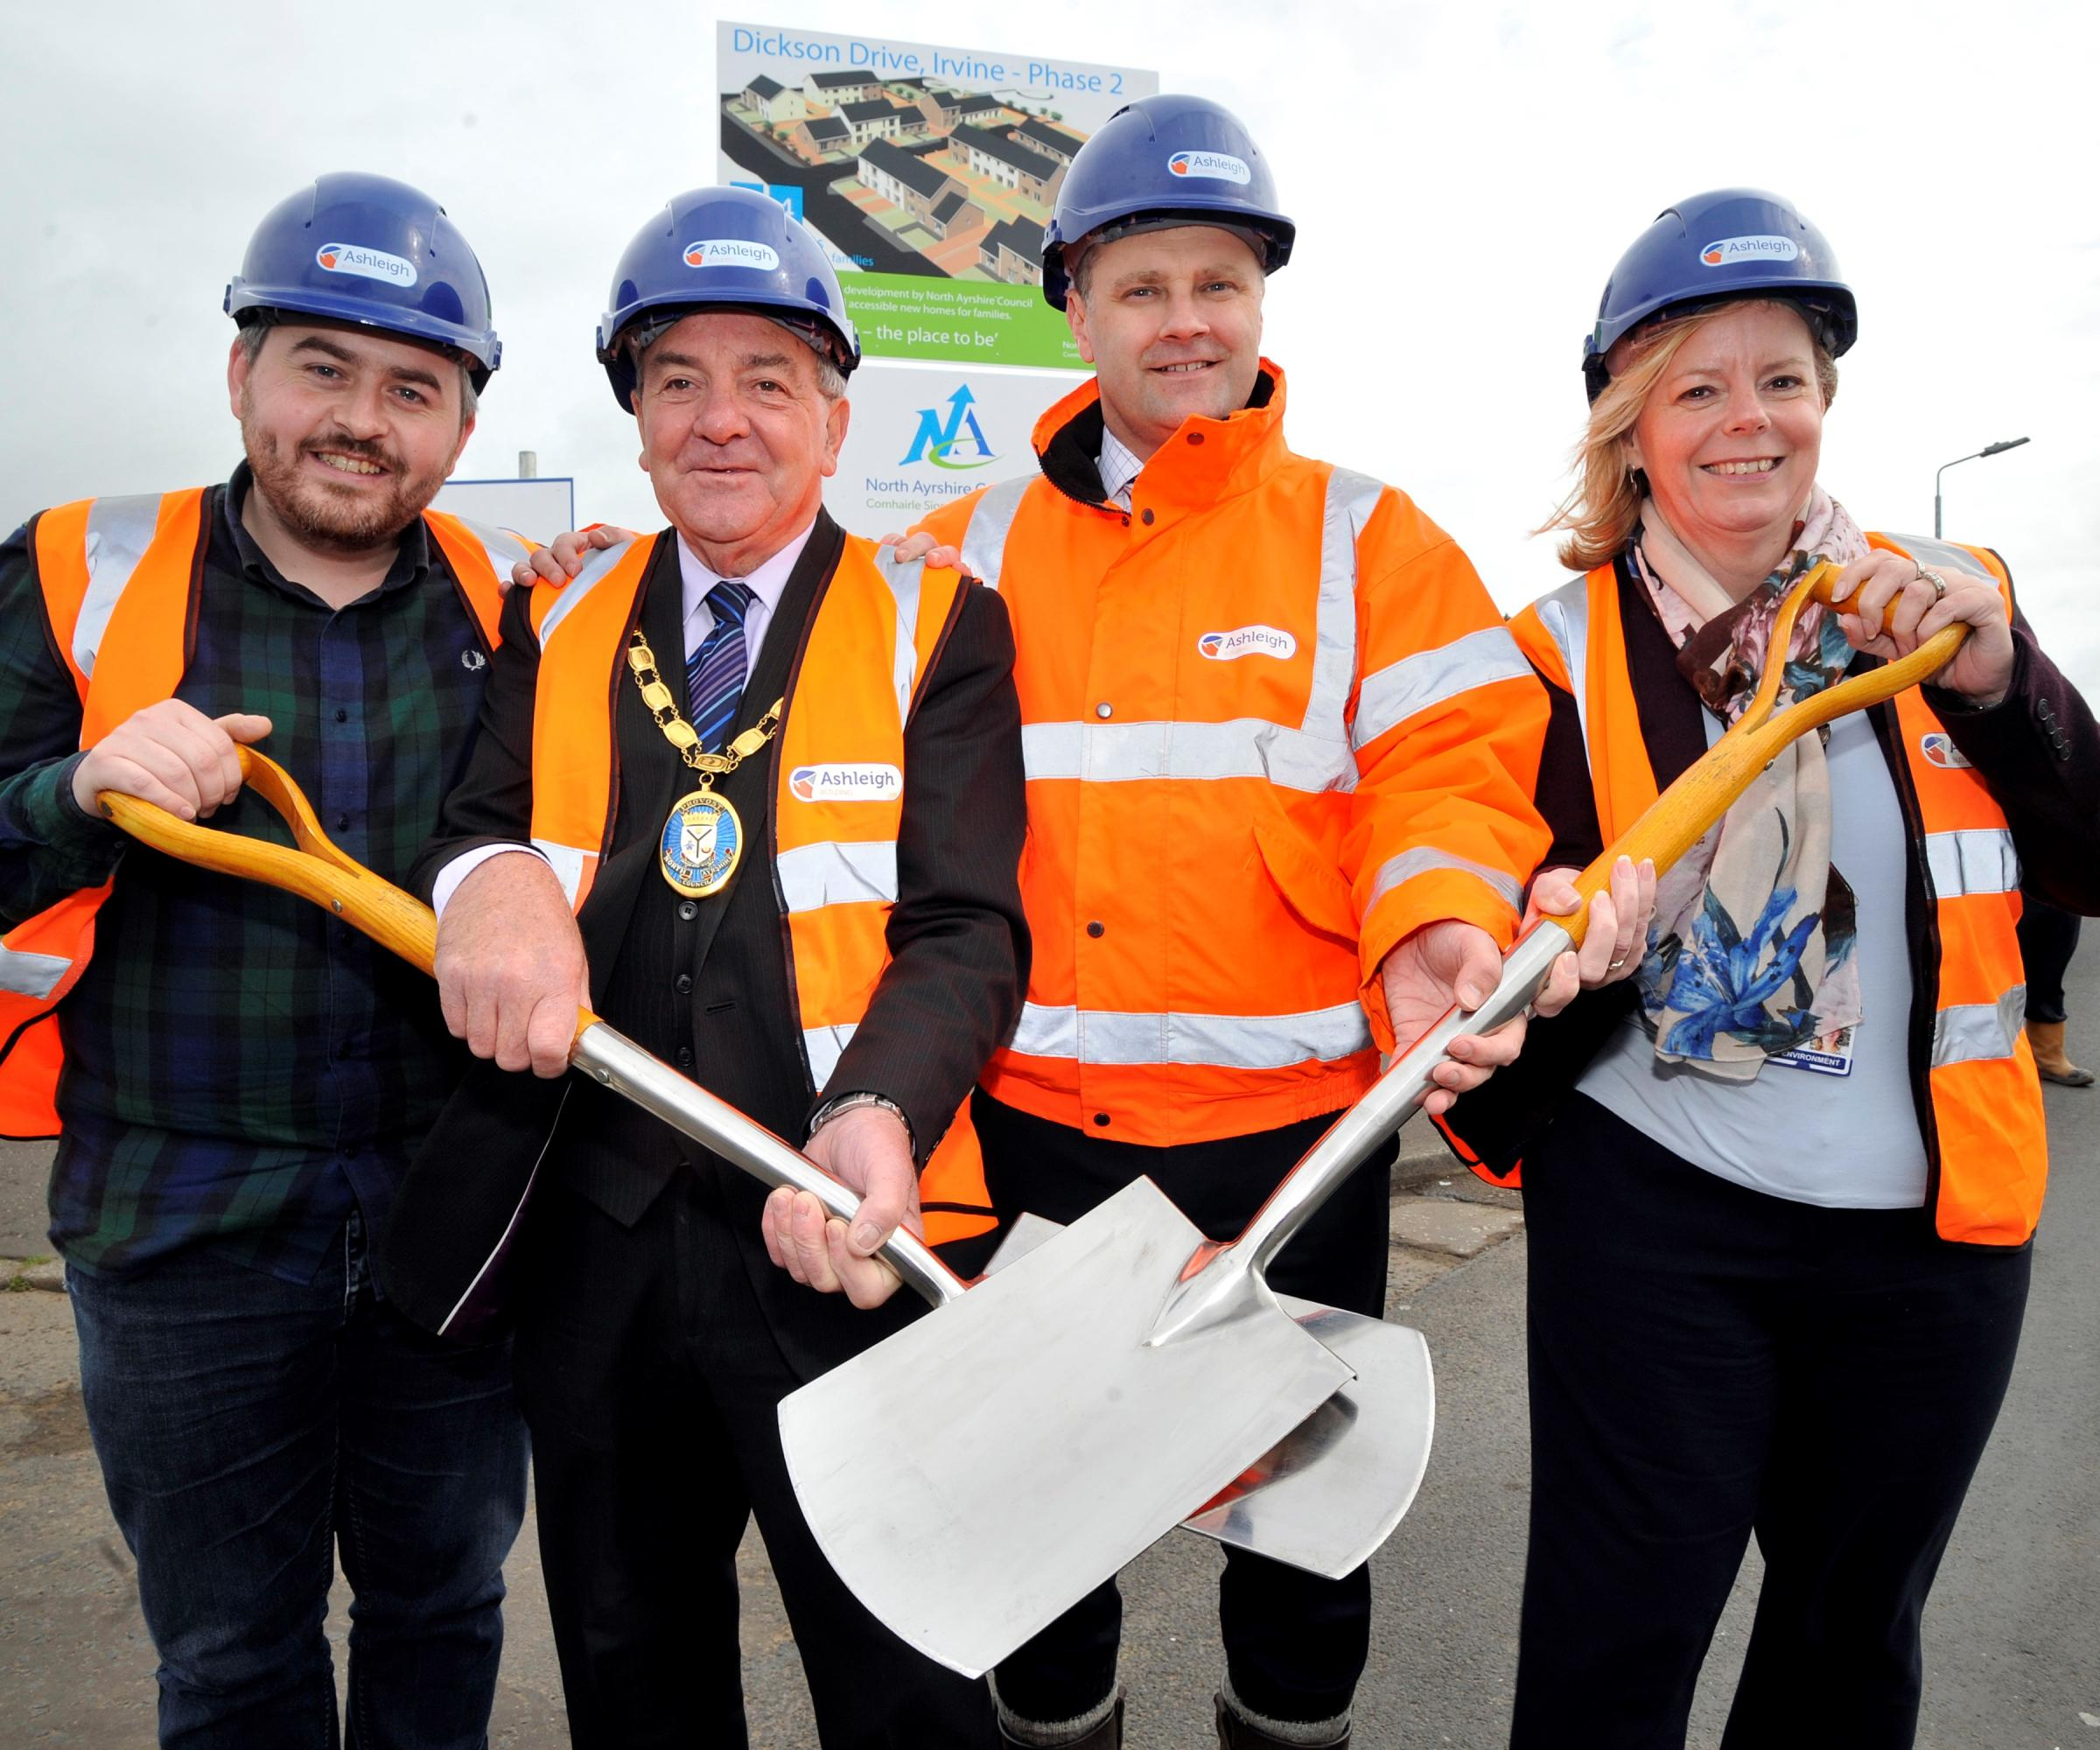 Work kicks off for 24 new council houses in Dickson Drive